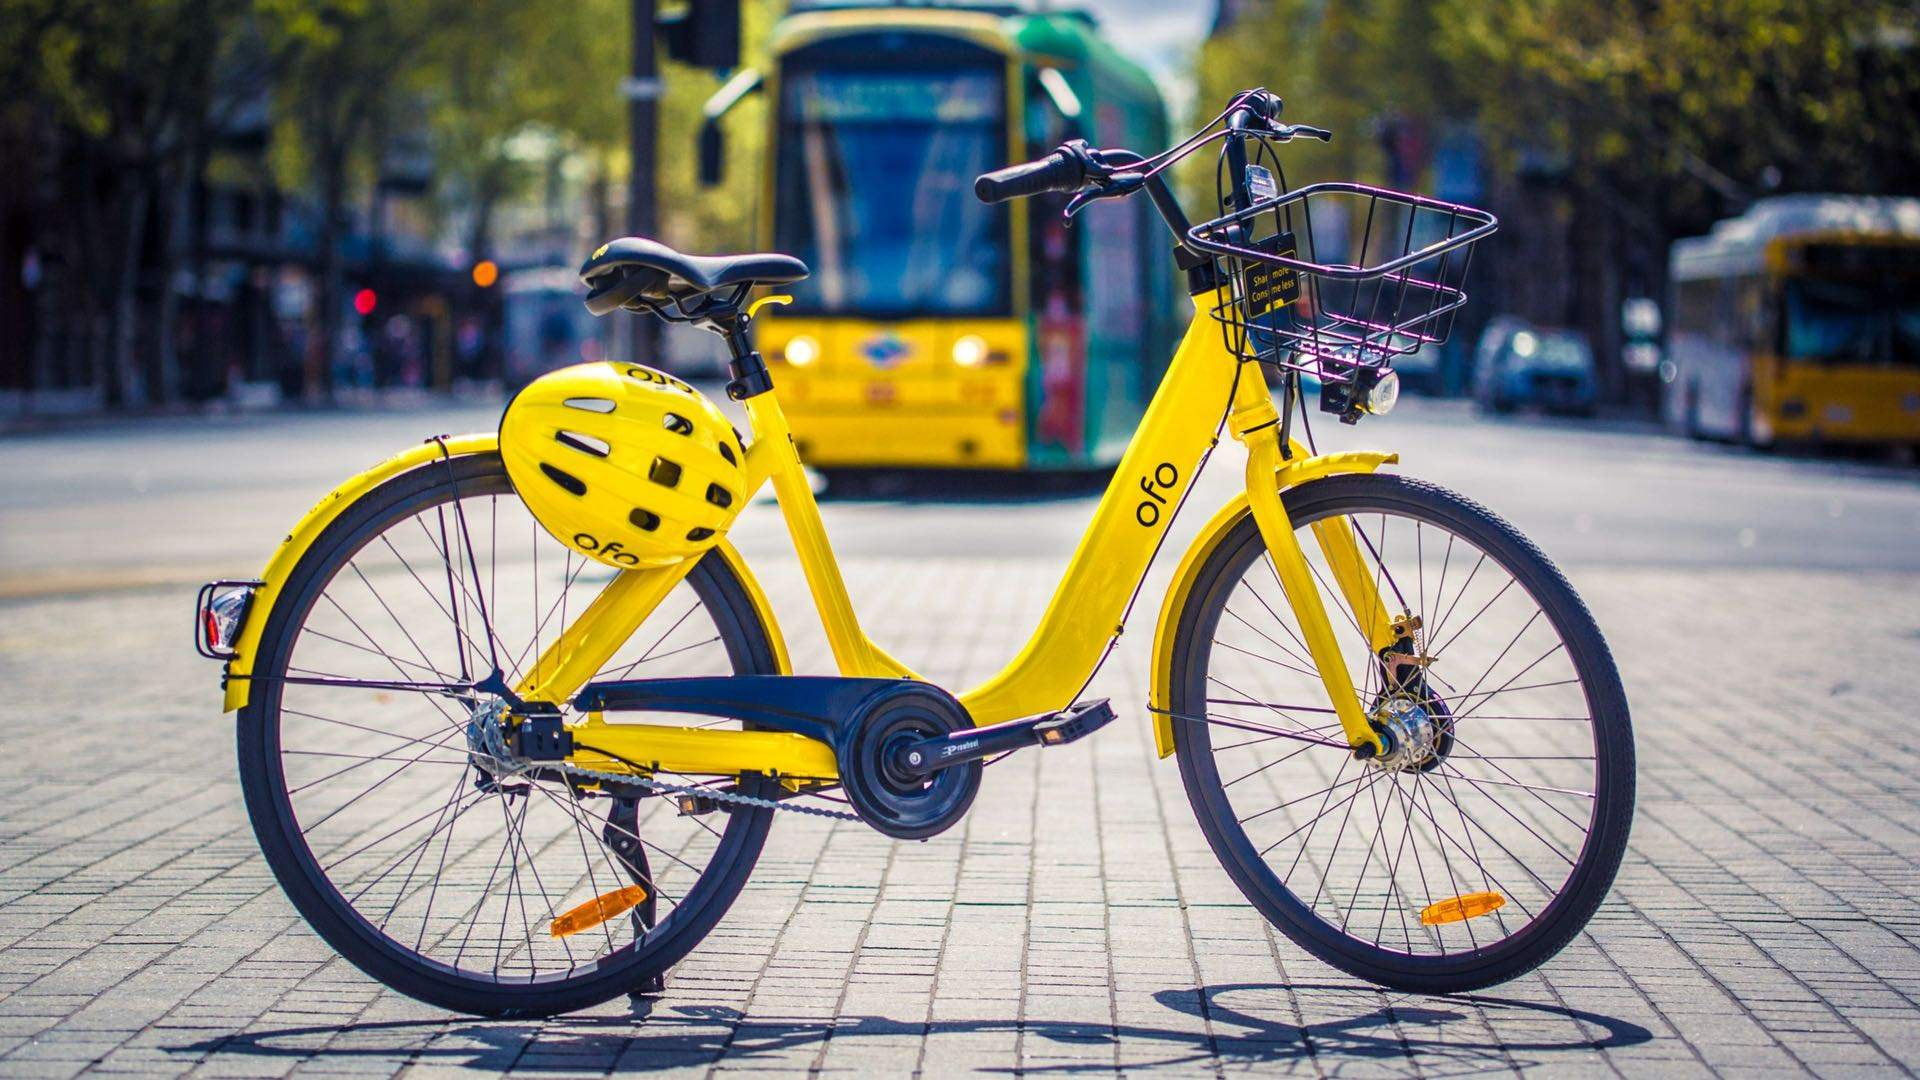 This Sydney Council Has Gone Ahead and Started Impounding Rogue Share Bikes